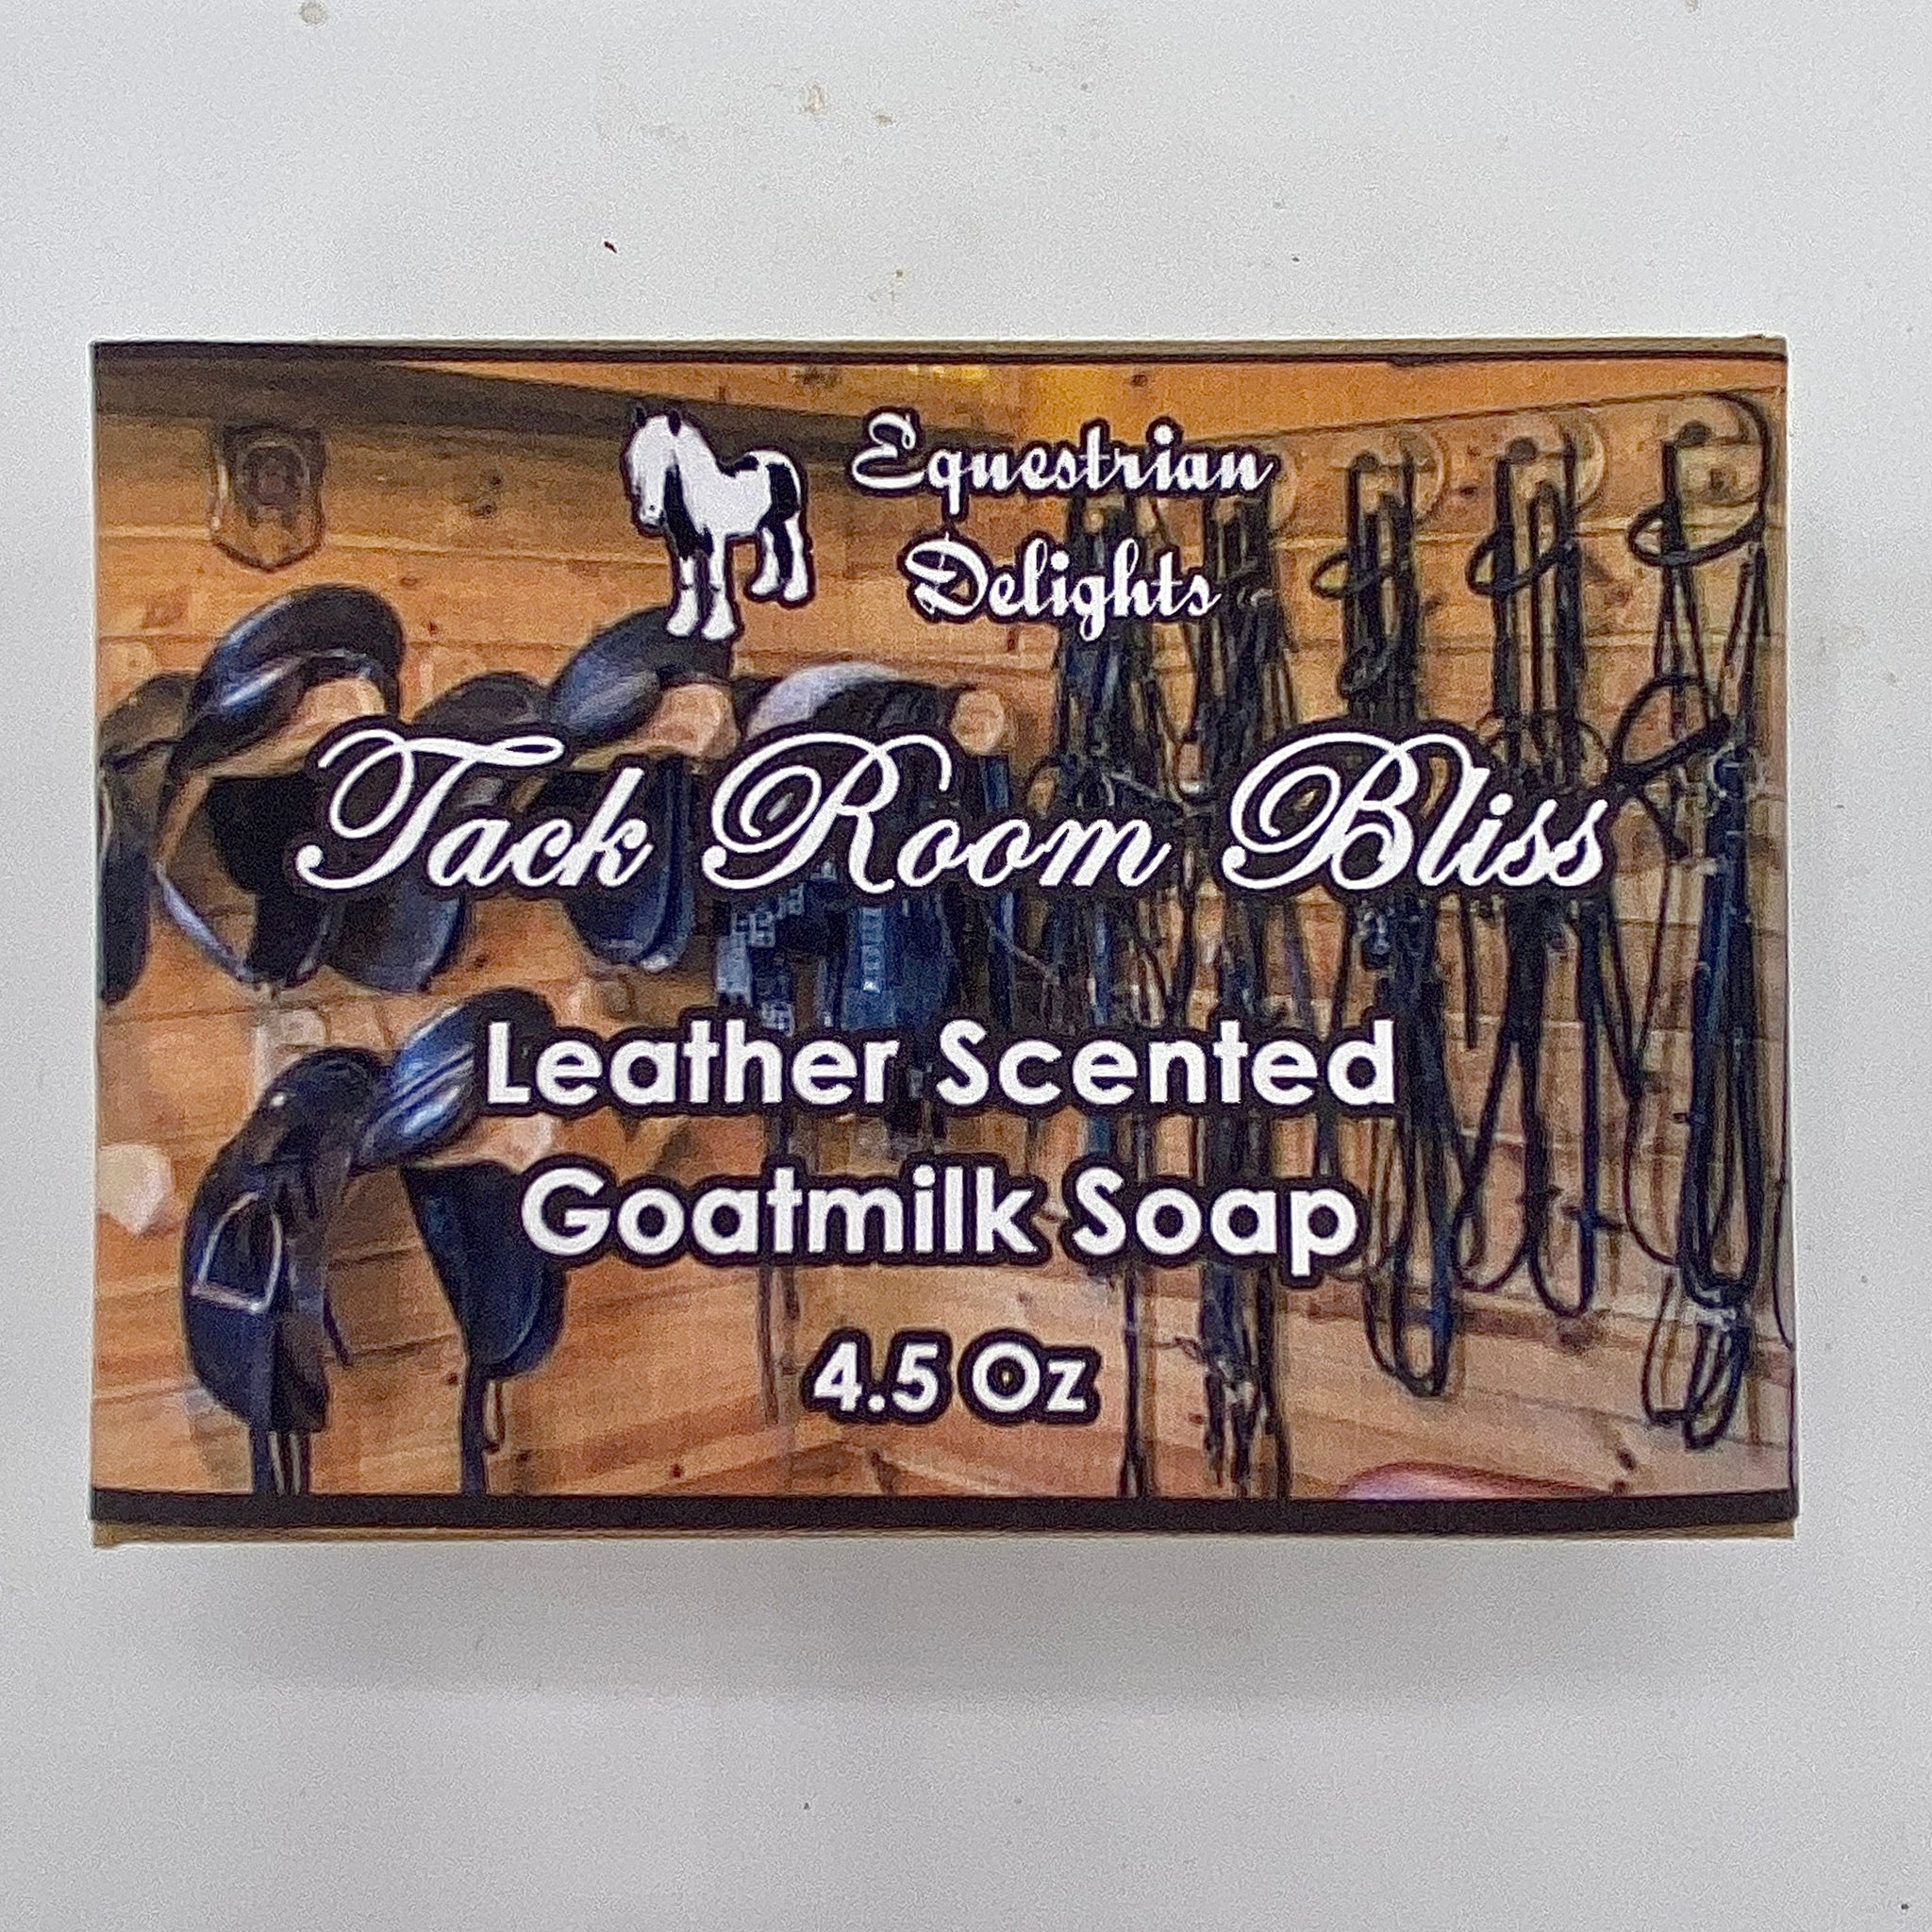 Tack Room Bliss Leather Scented Goat Milk Soap